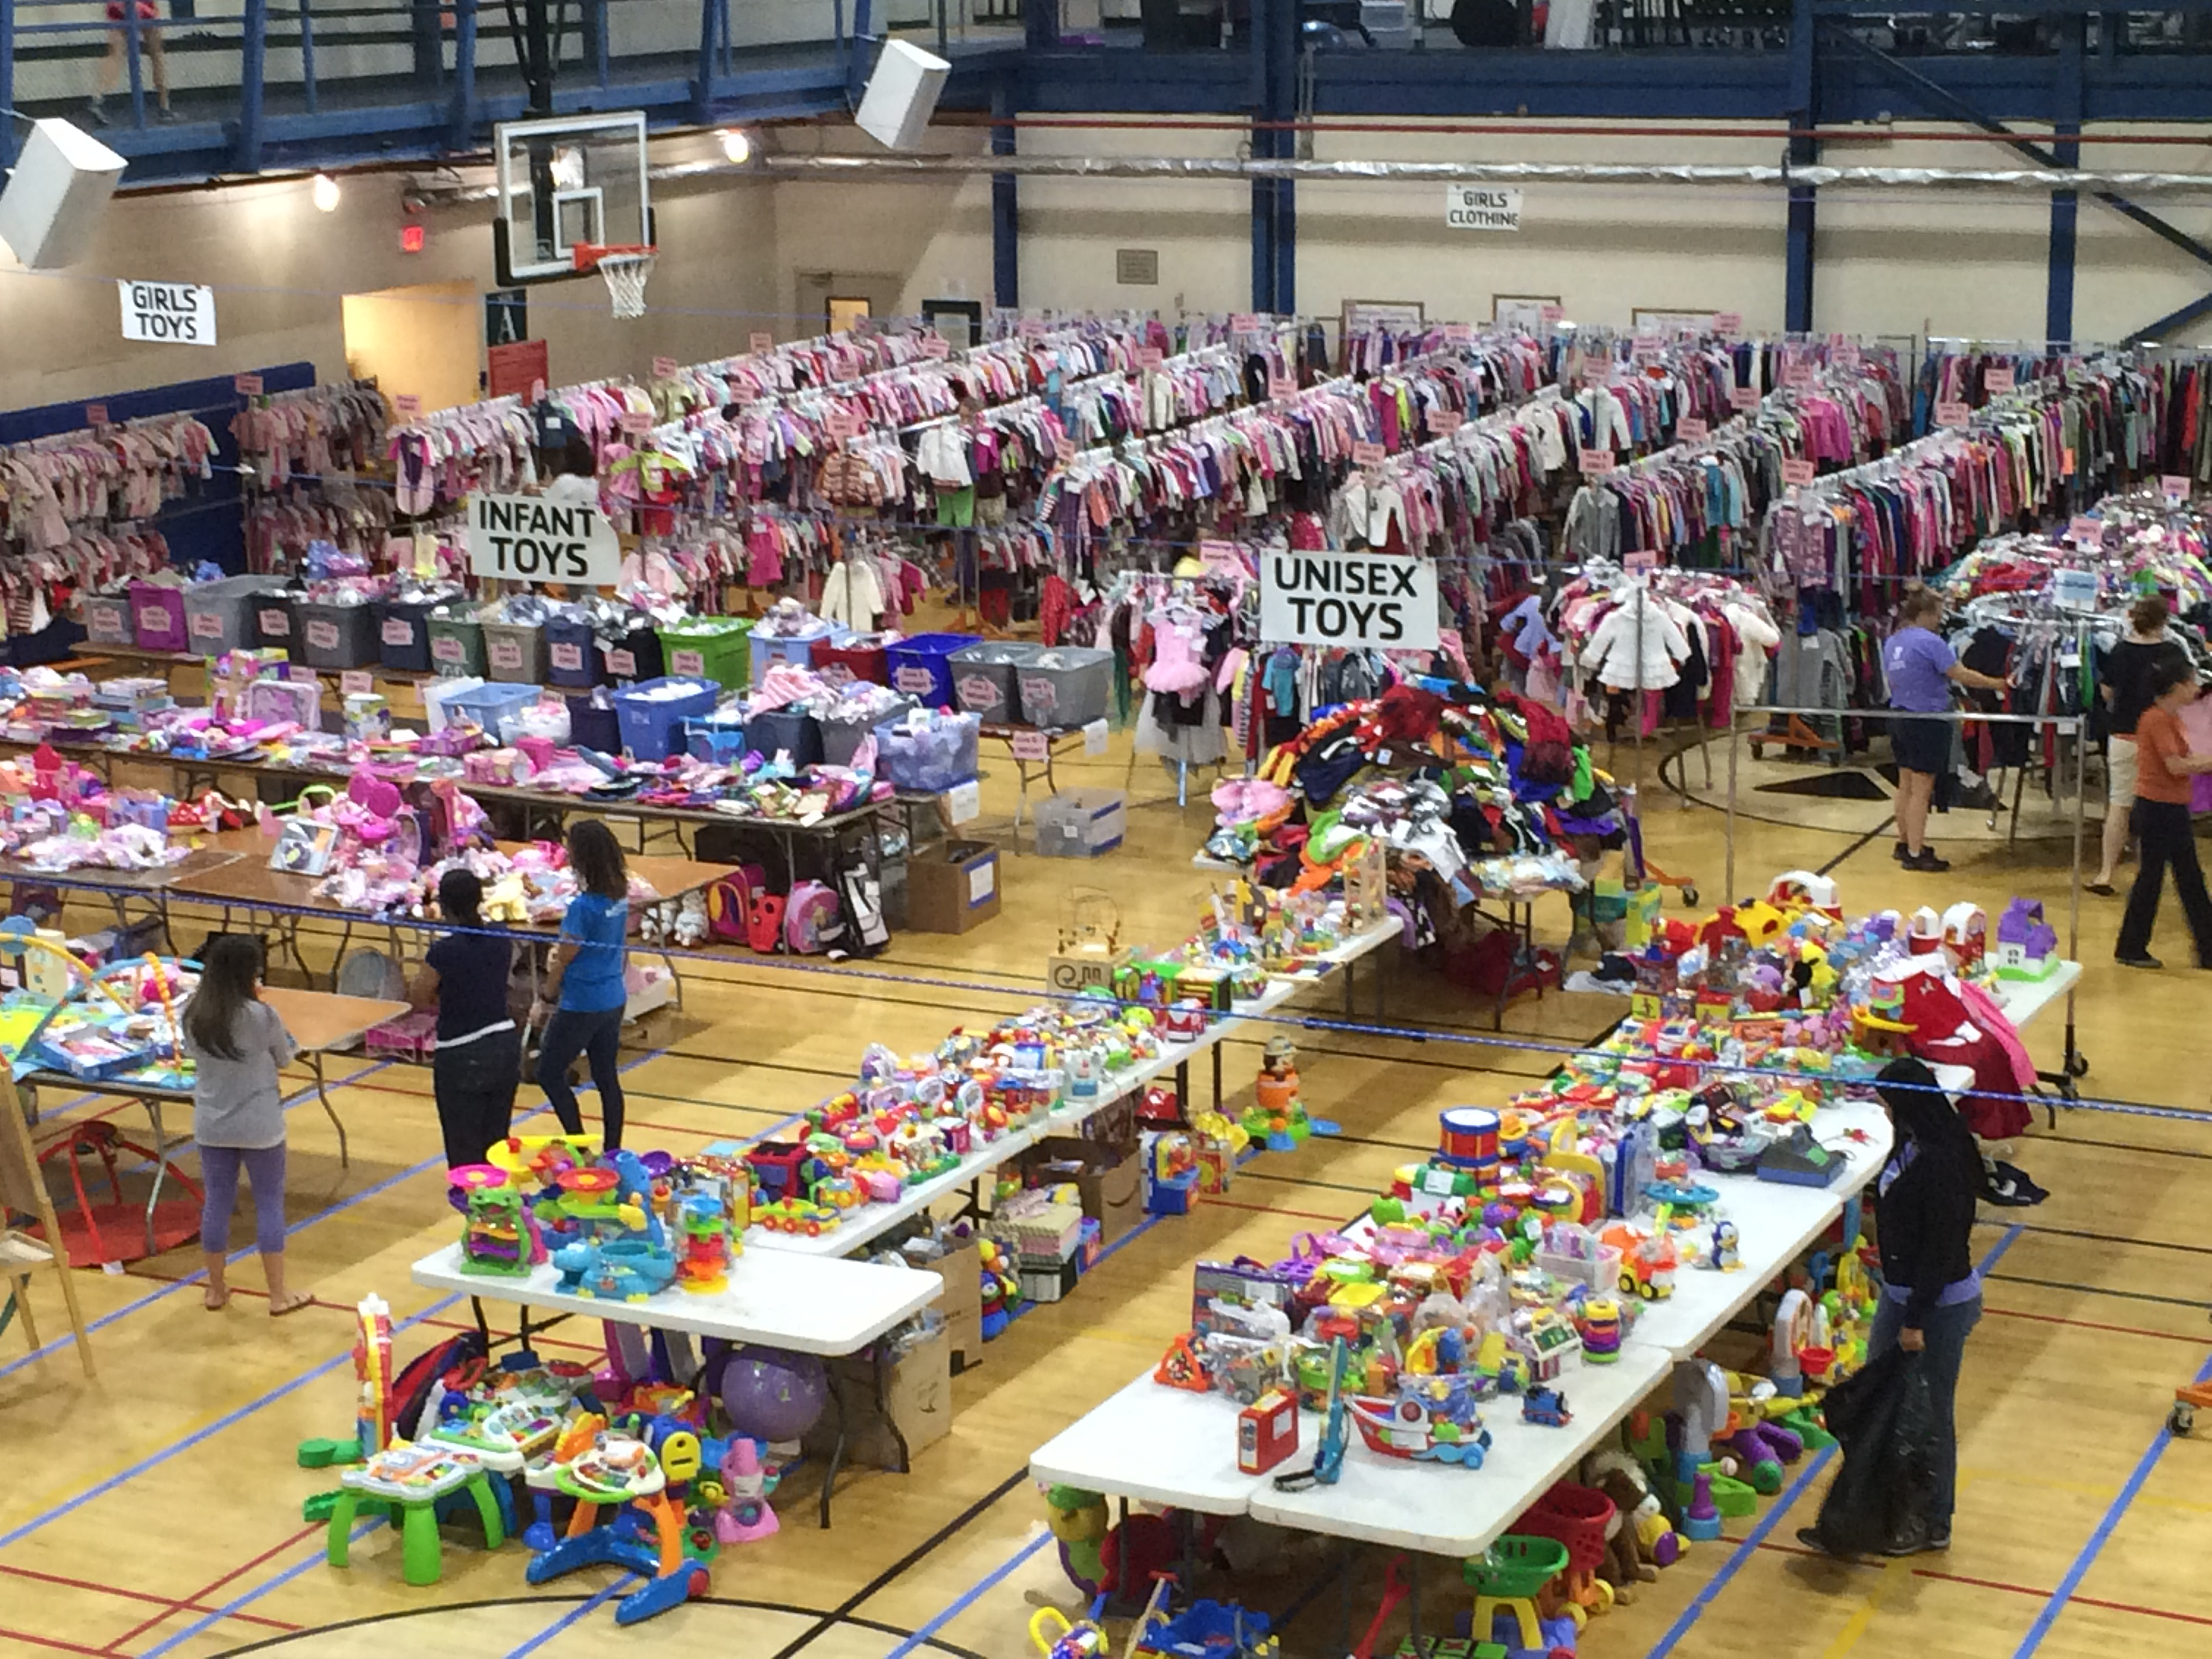 Harris ymca kids konsignment sale on feb 27th for Harris ymca summer camp